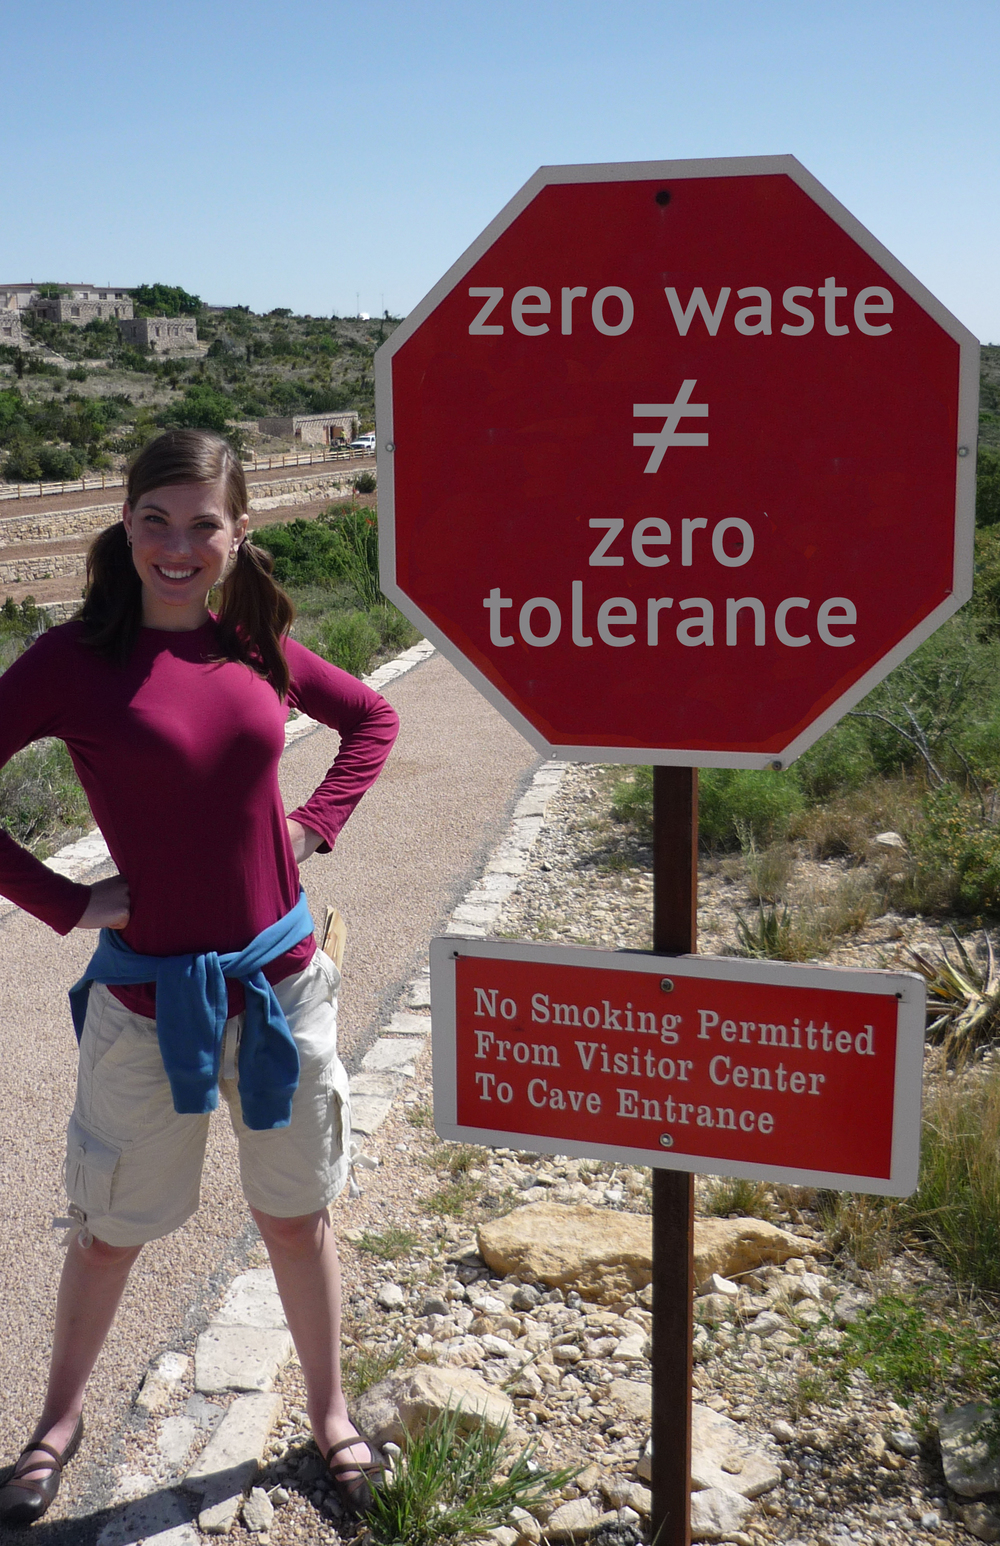 zero waste does not equal zero tolerance from goingzerowaste.com